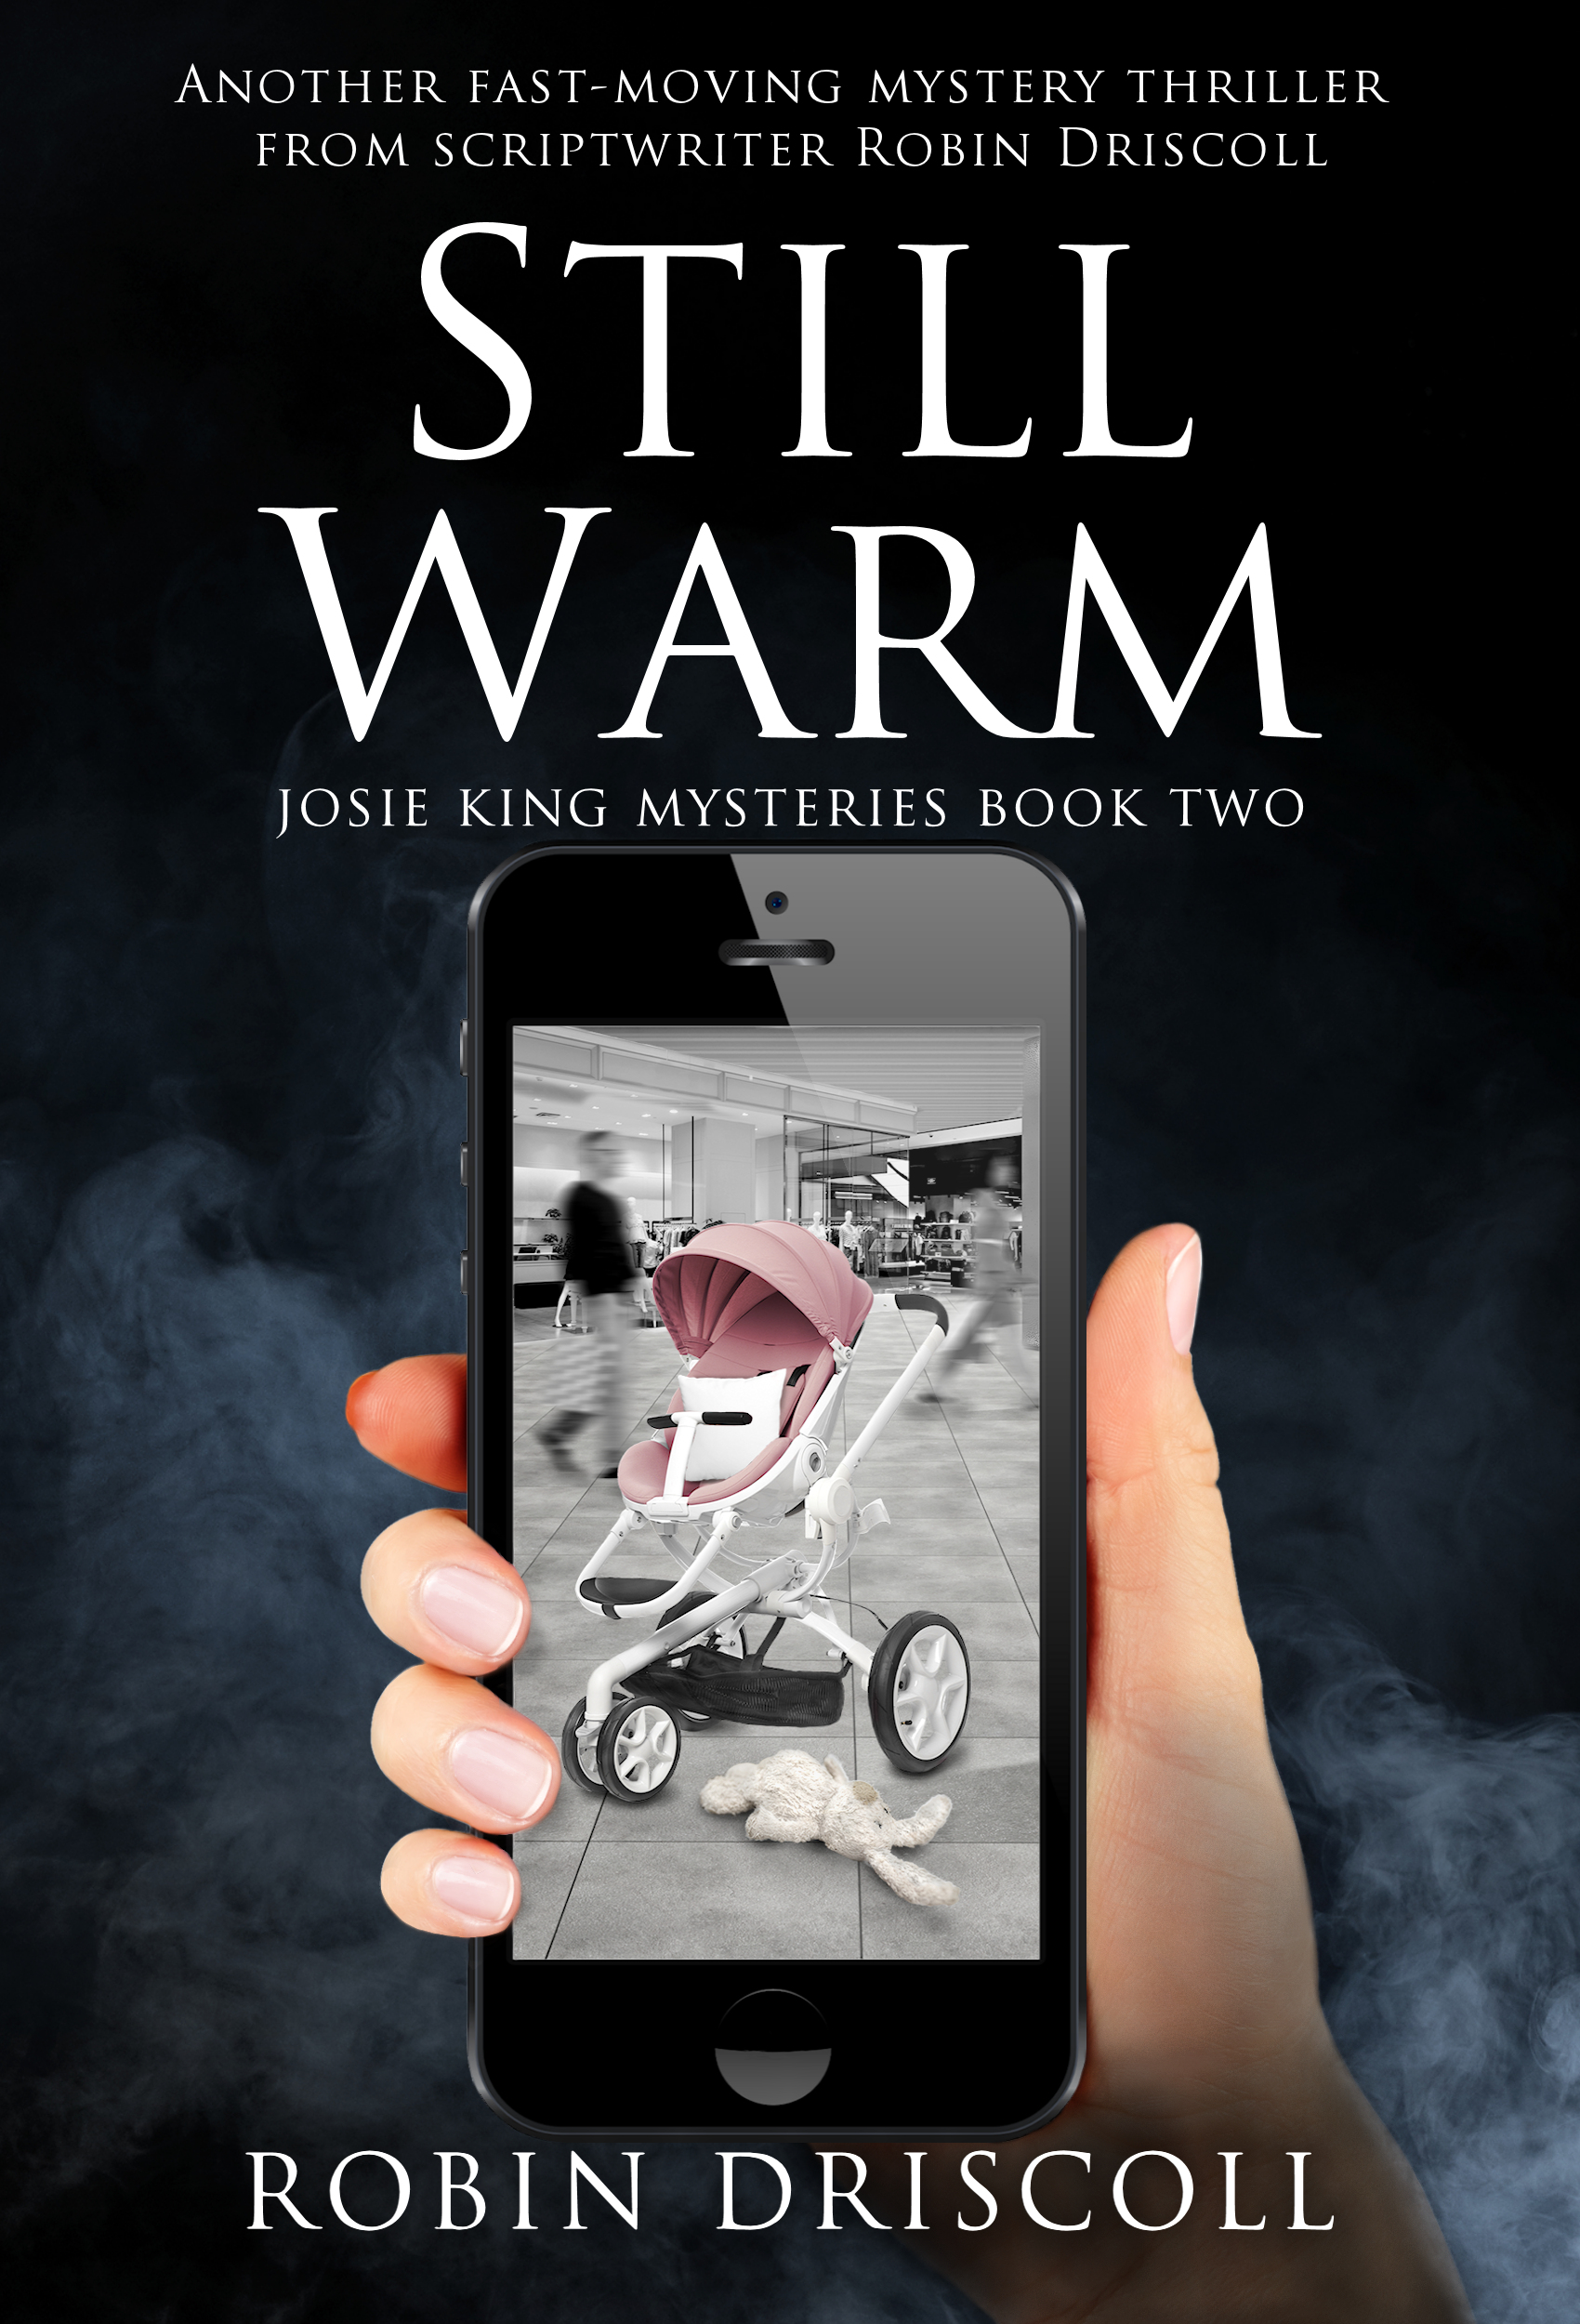 Still Warm by Robin Driscoll